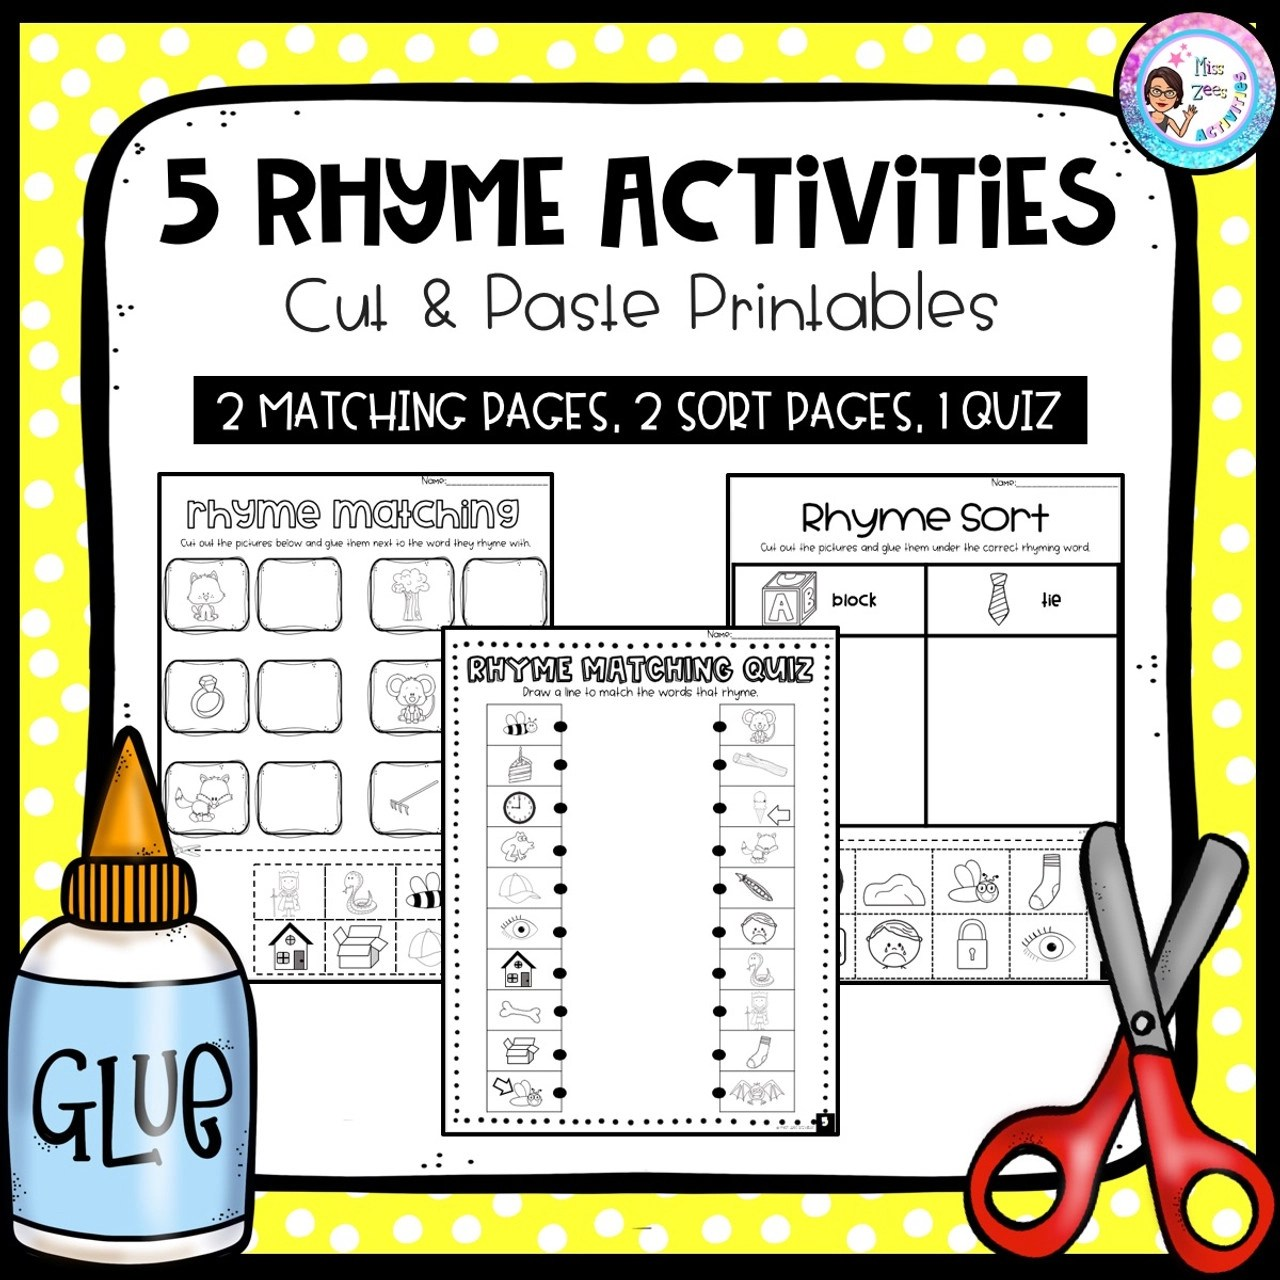 small resolution of 5 Rhyme Activities: Cut \u0026 Paste Printables - Amped Up Learning